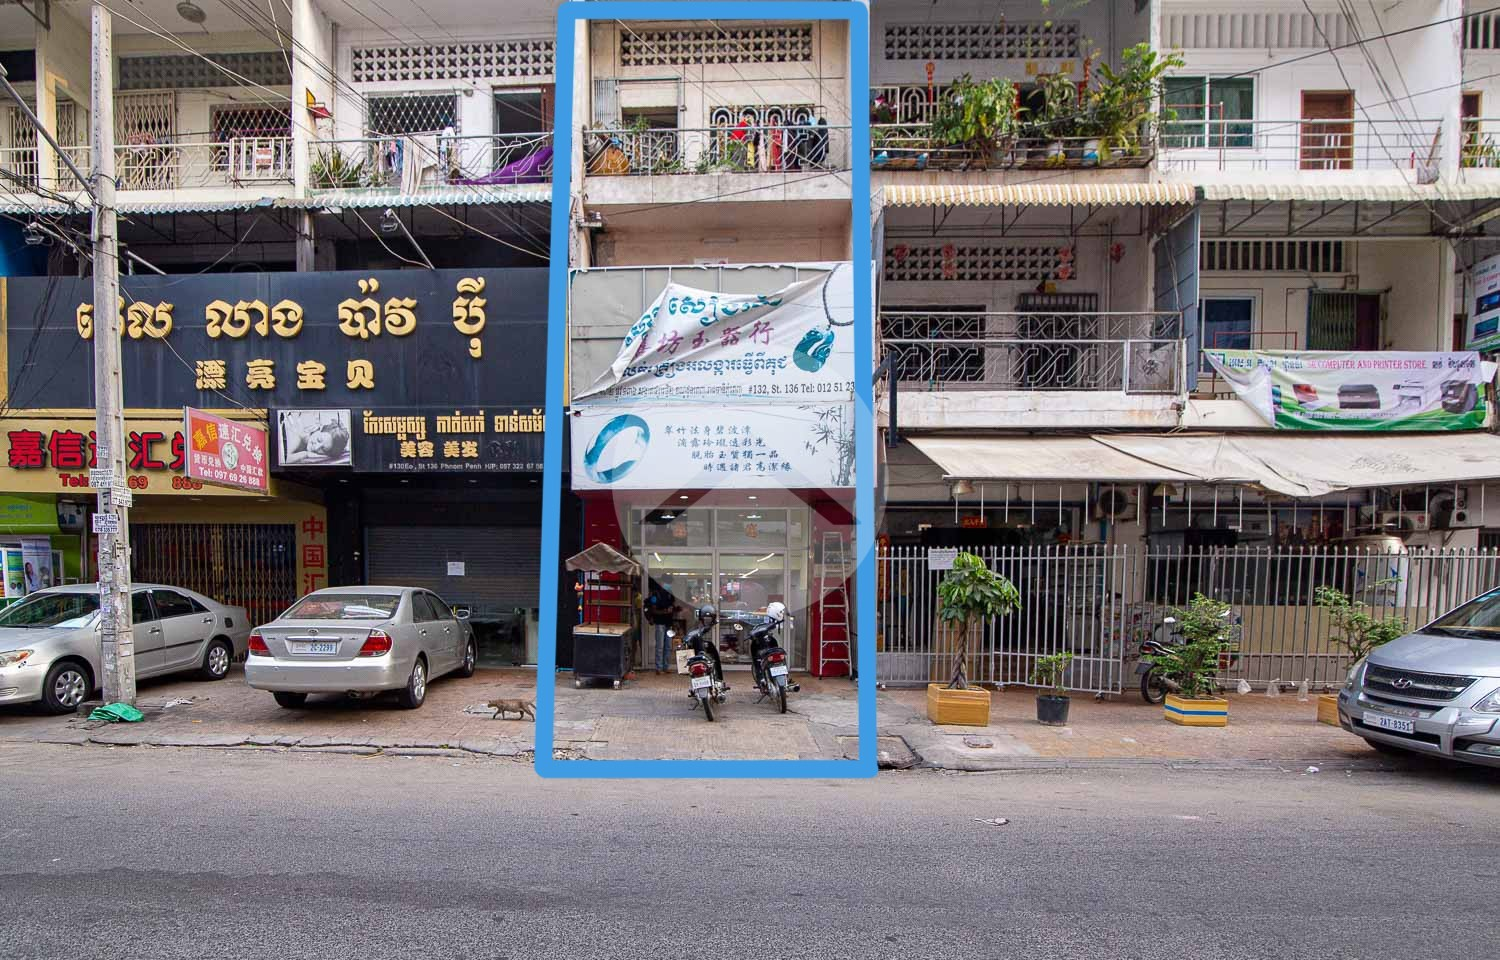 2 Bedroom Shophouse For Sale - Daun Penh, Phnom Penh